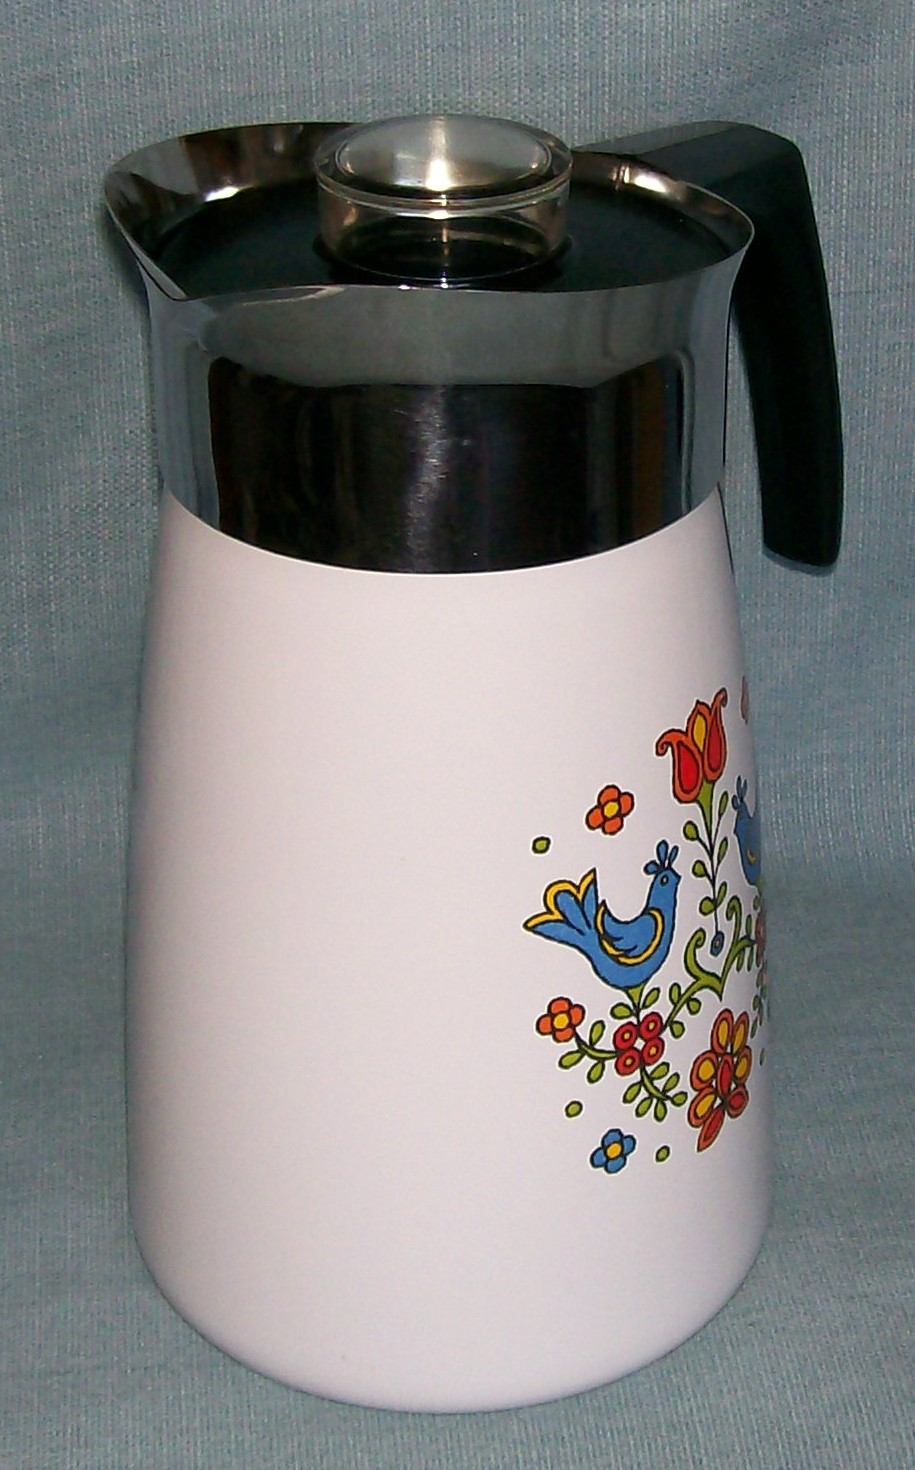 Vtg Corning COUNTRY FESTIVAL Friendship Stove Top 10 Cup Percolator P149 Birds image 3